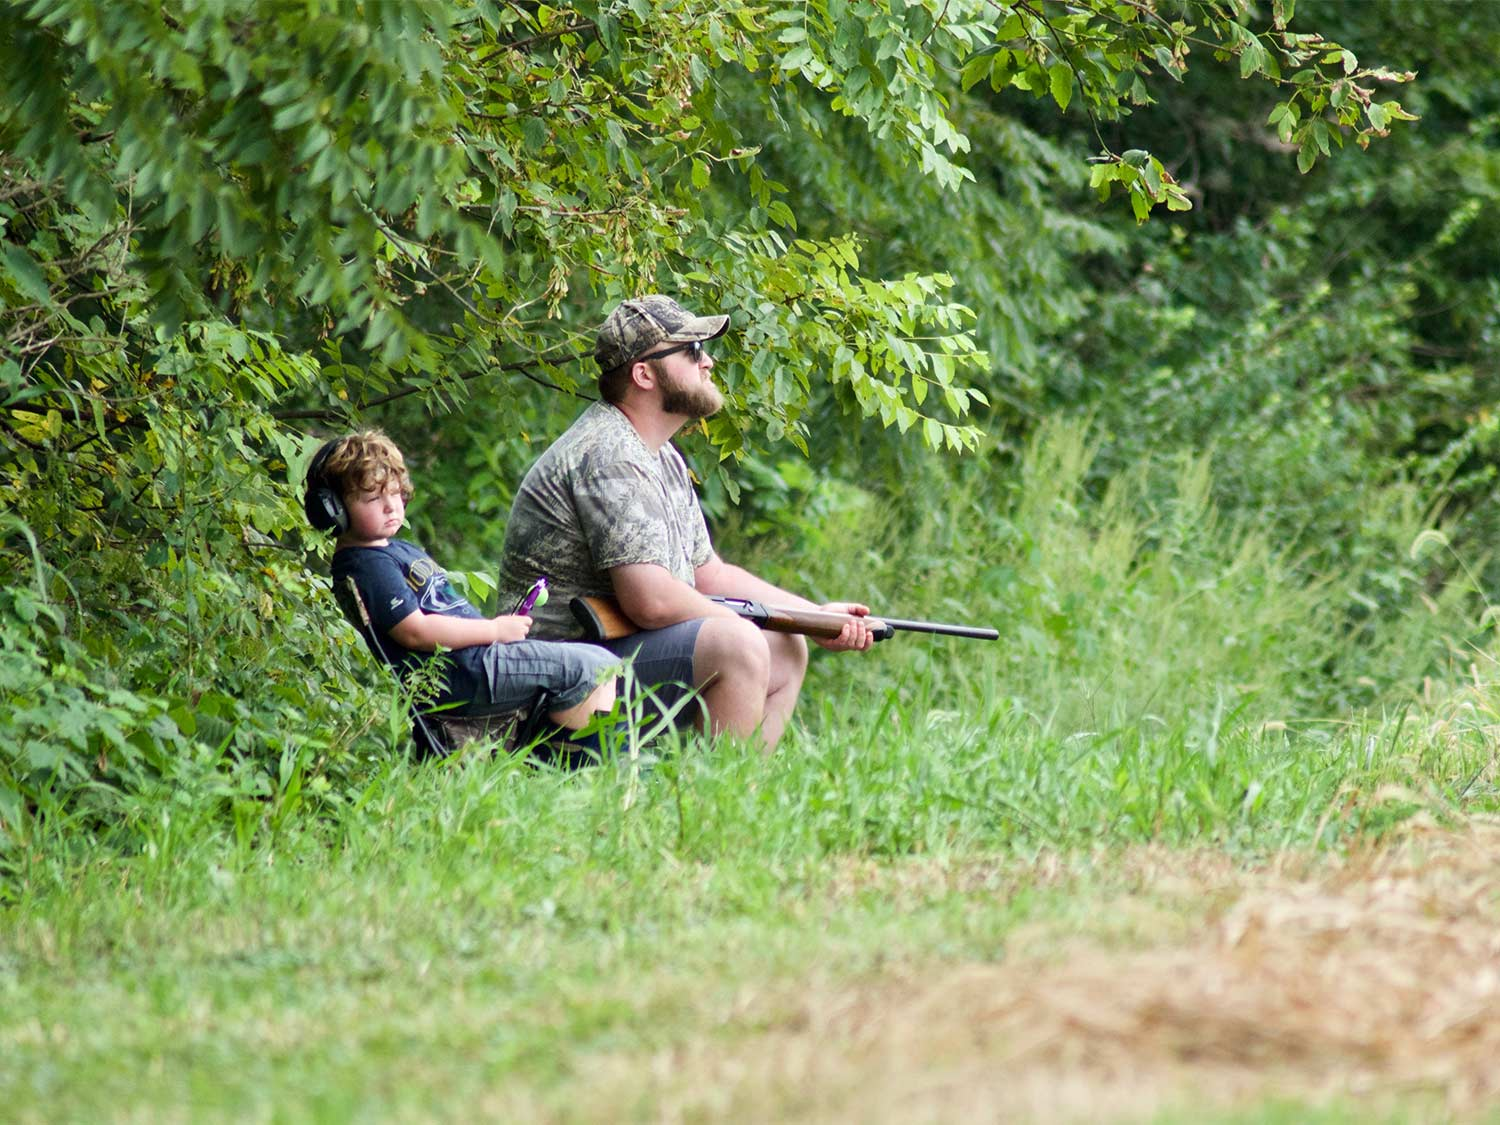 A man and a young kid sit at the edge of a field for hunting.